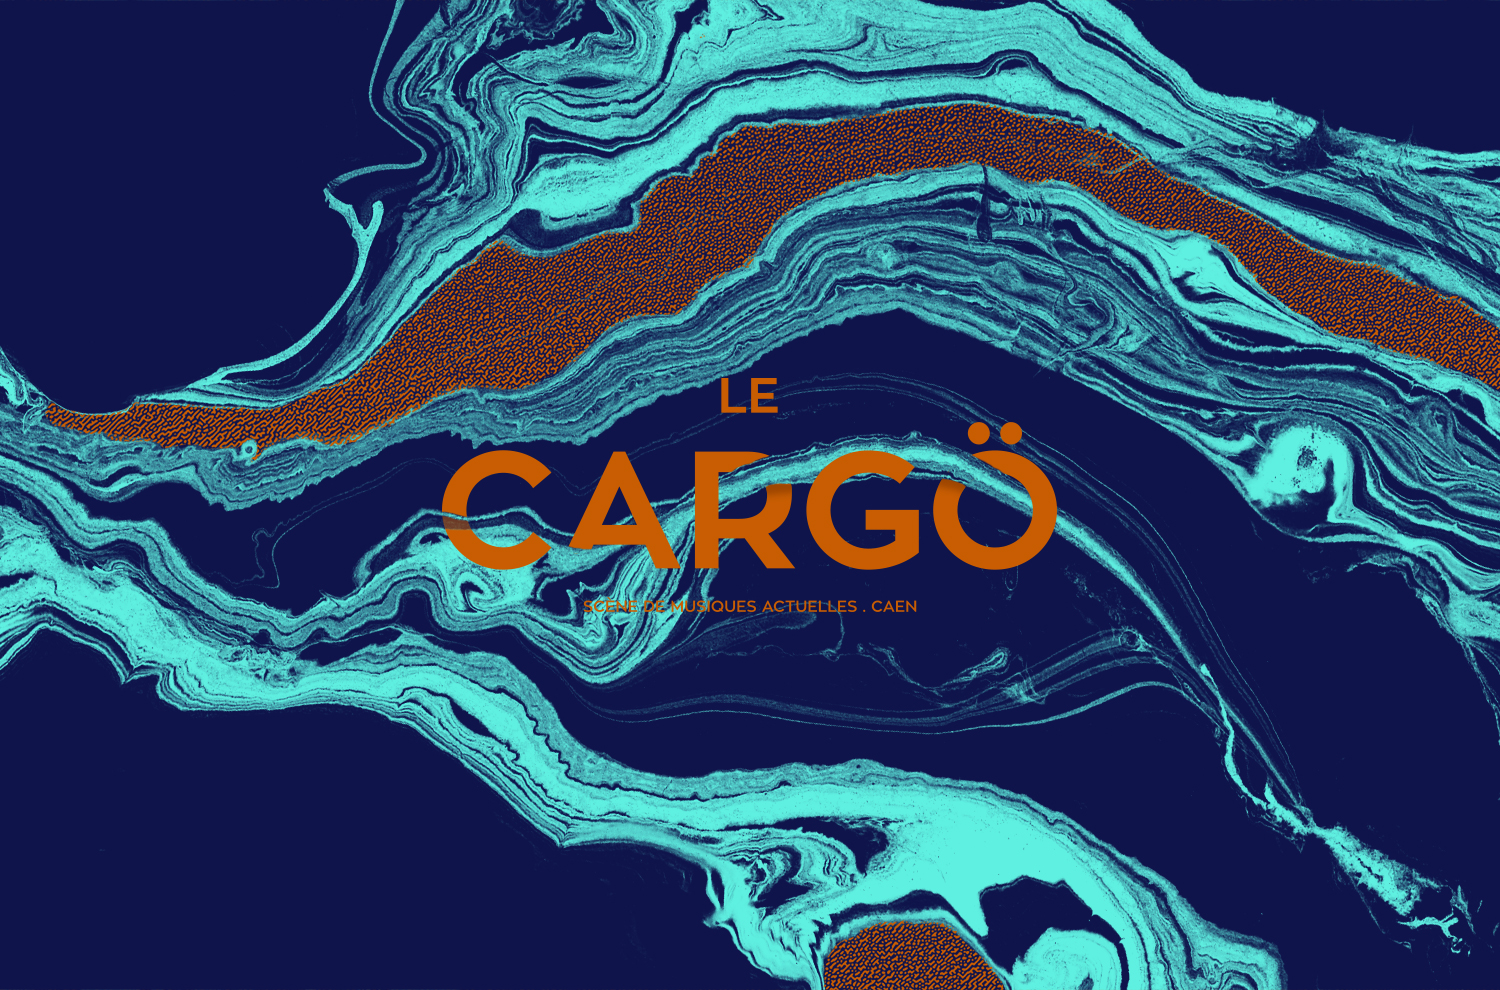 Illustration of the project Le Cargö s10